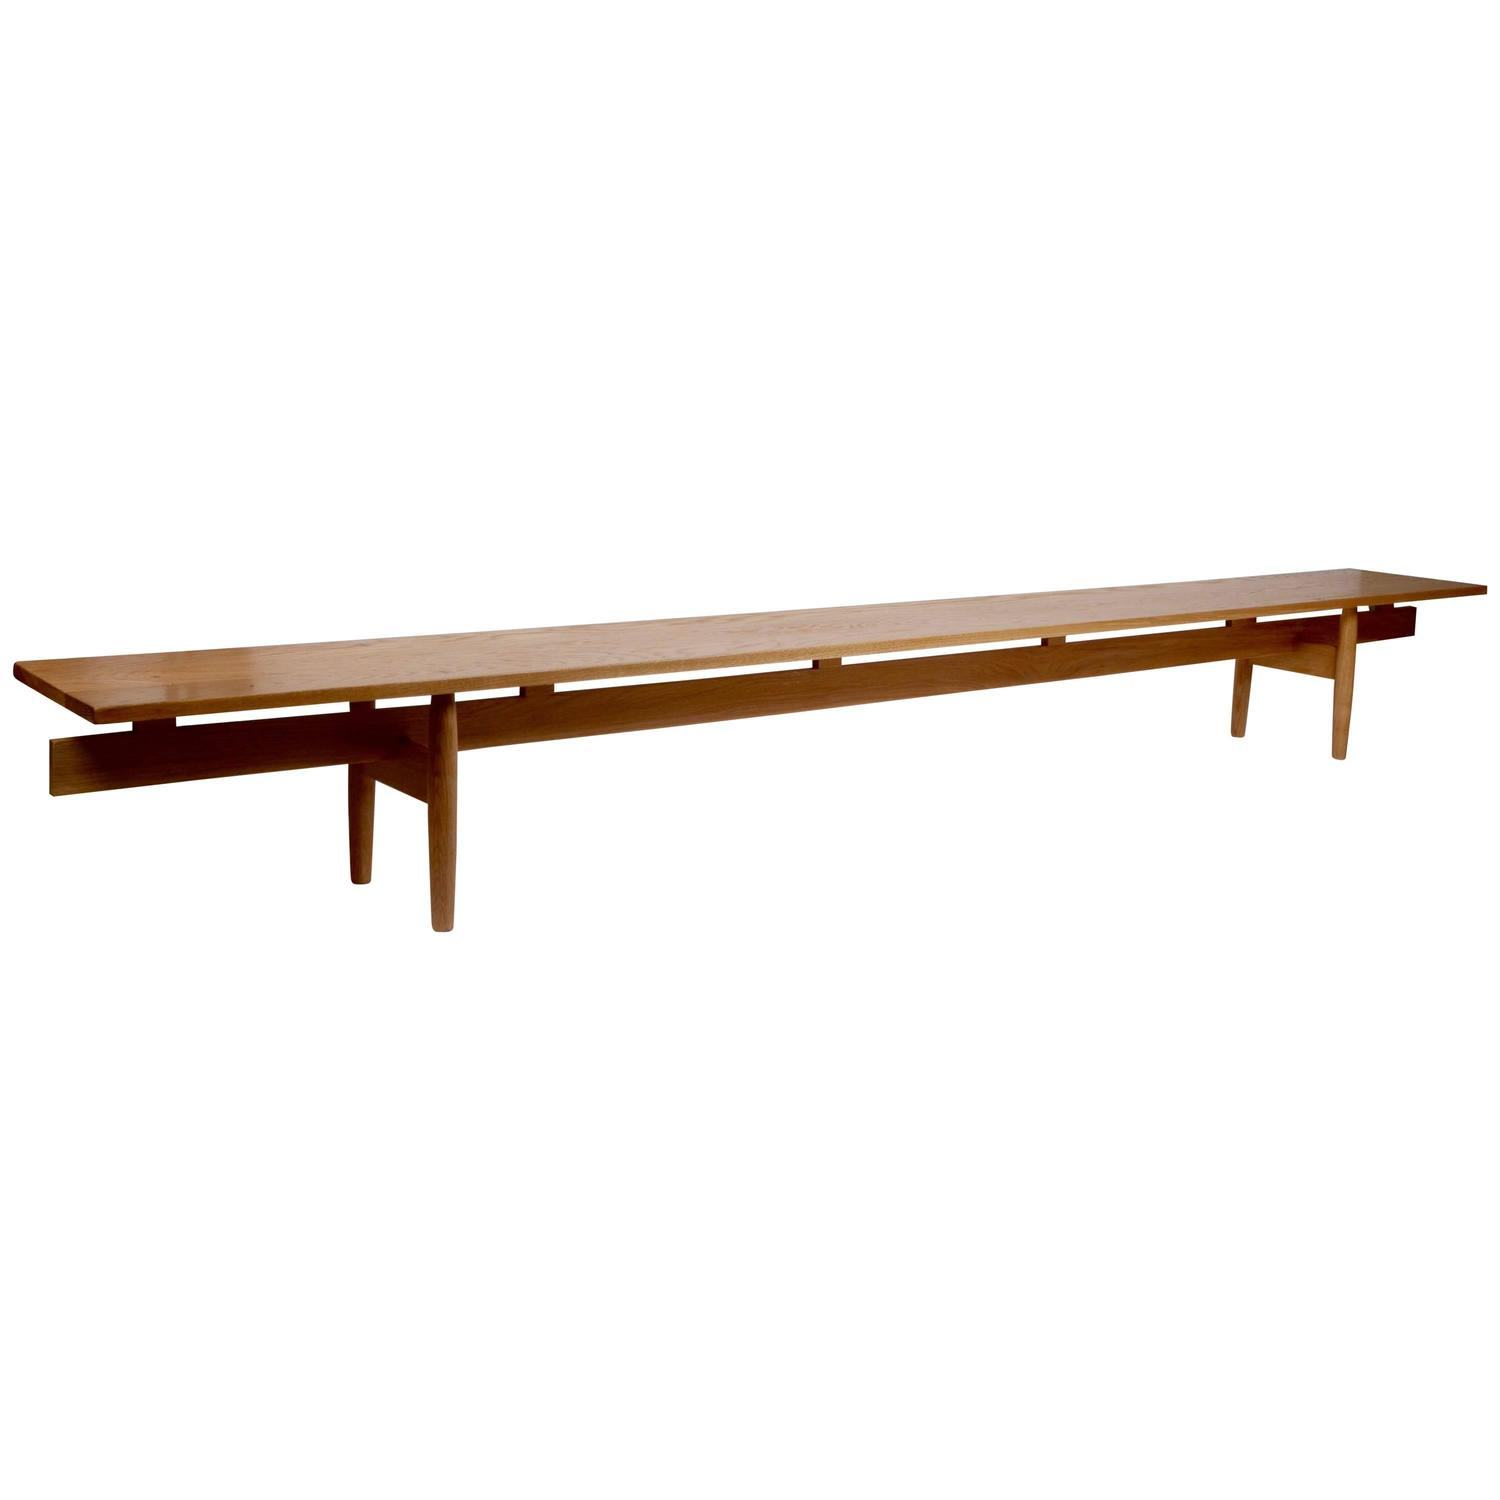 Jens risom floating bench for sale at 1stdibs - Bench Quot Long Banc Quot Ib Kofod Larsen Attributed